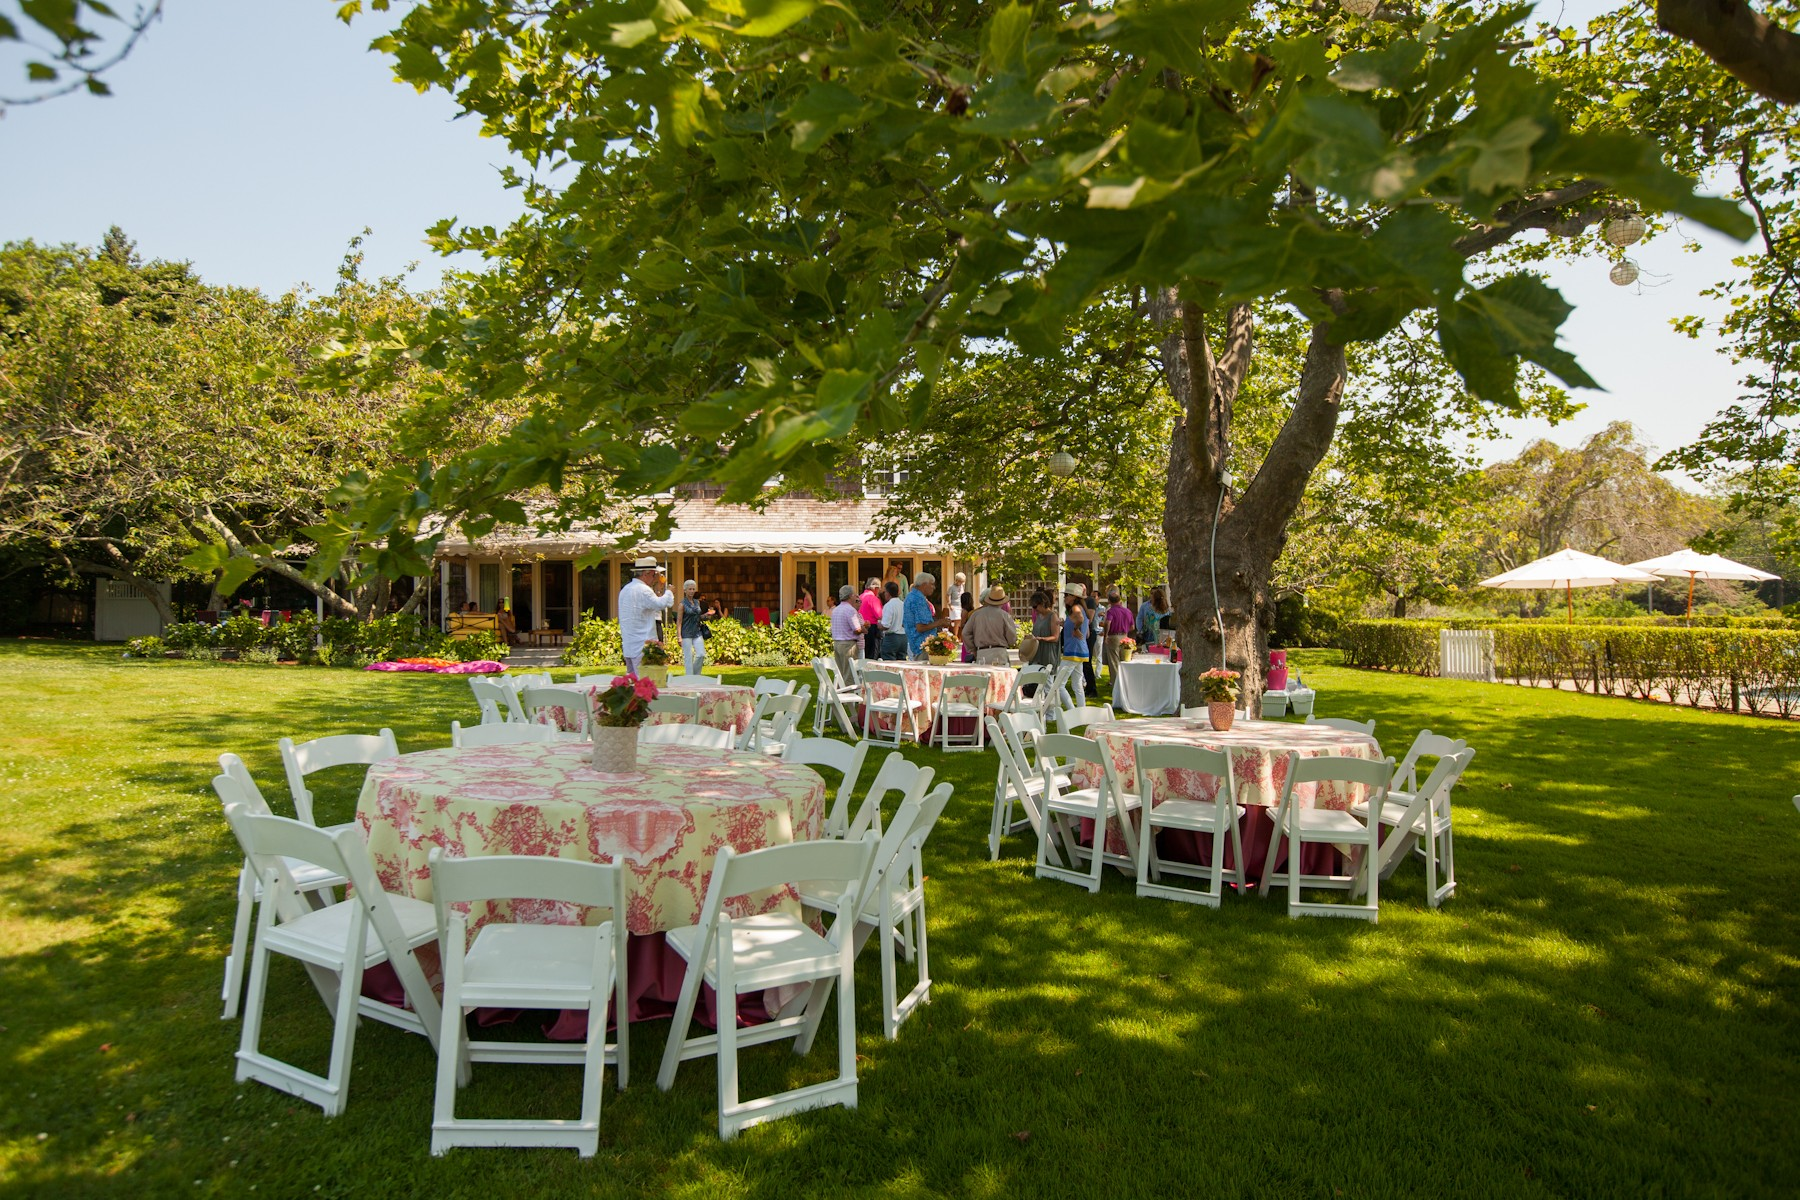 Garden Party Wedding Receptions (Image 3 of 10)